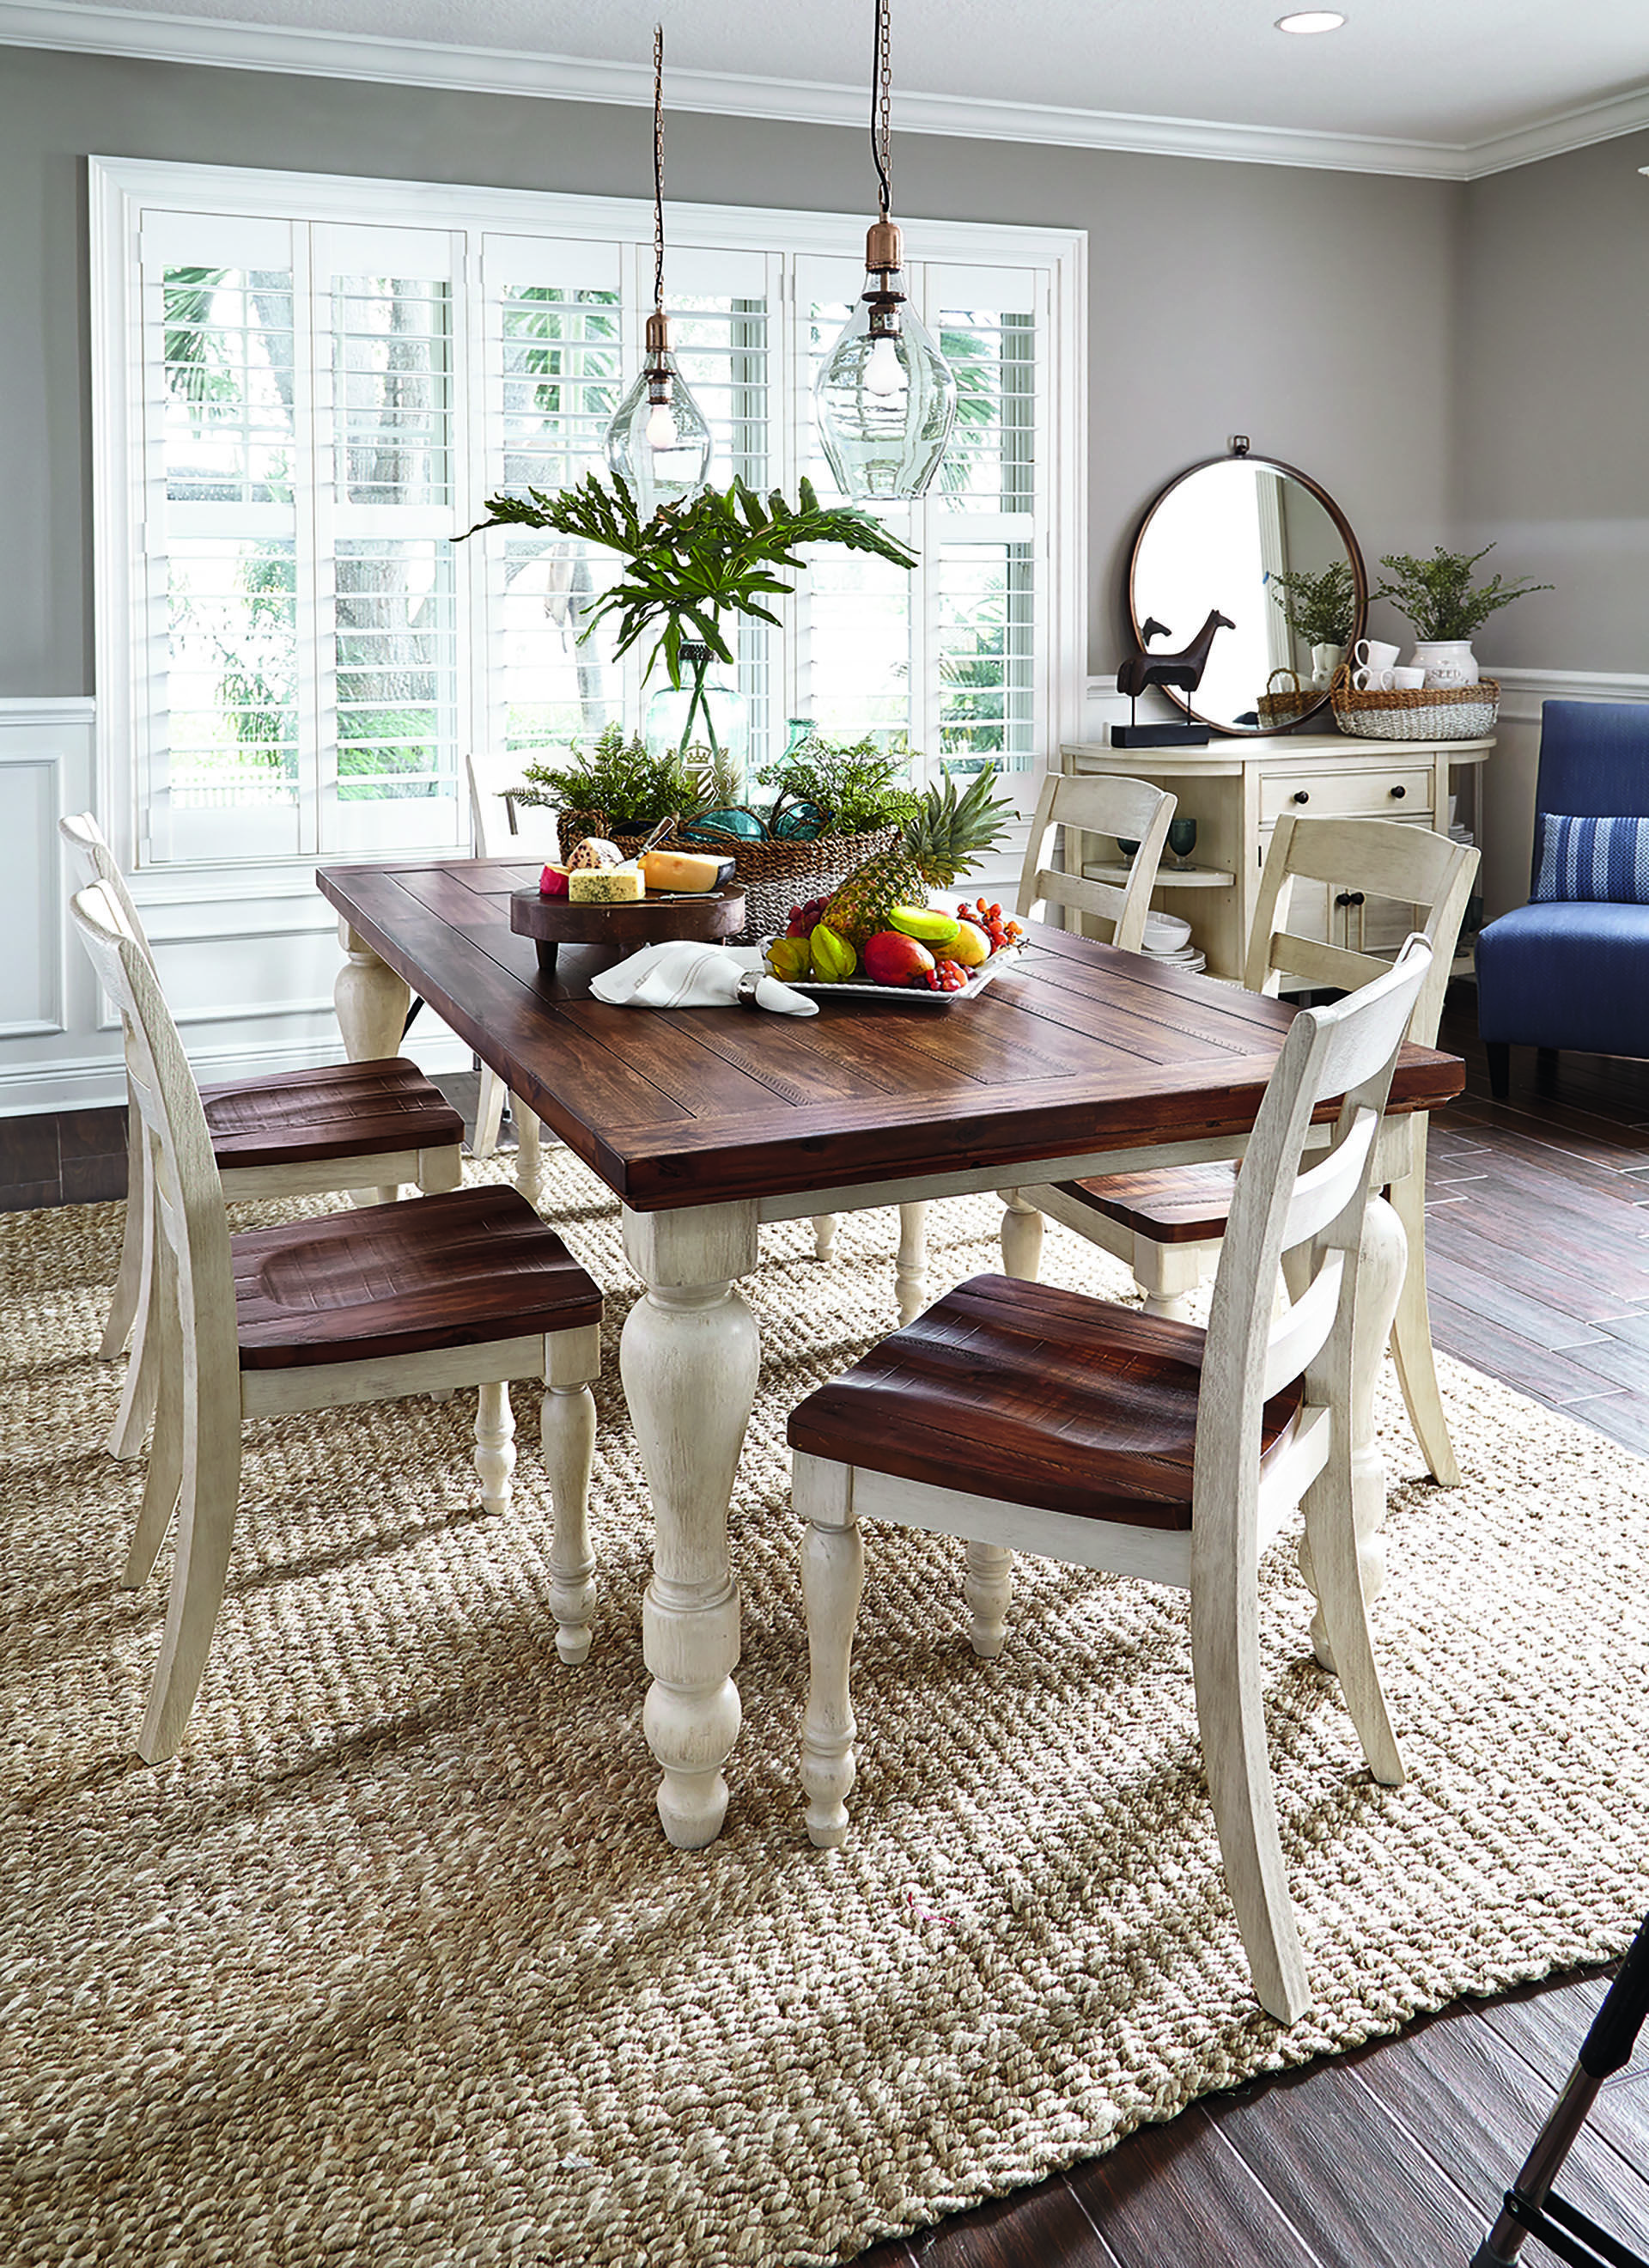 Farmhouse Dining Table Is A Great Addition To Create Rustic Cozy Look In A Dinin Farmhouse Dining Room Table Dining Room Table Decor Farmhouse Dining Room Set